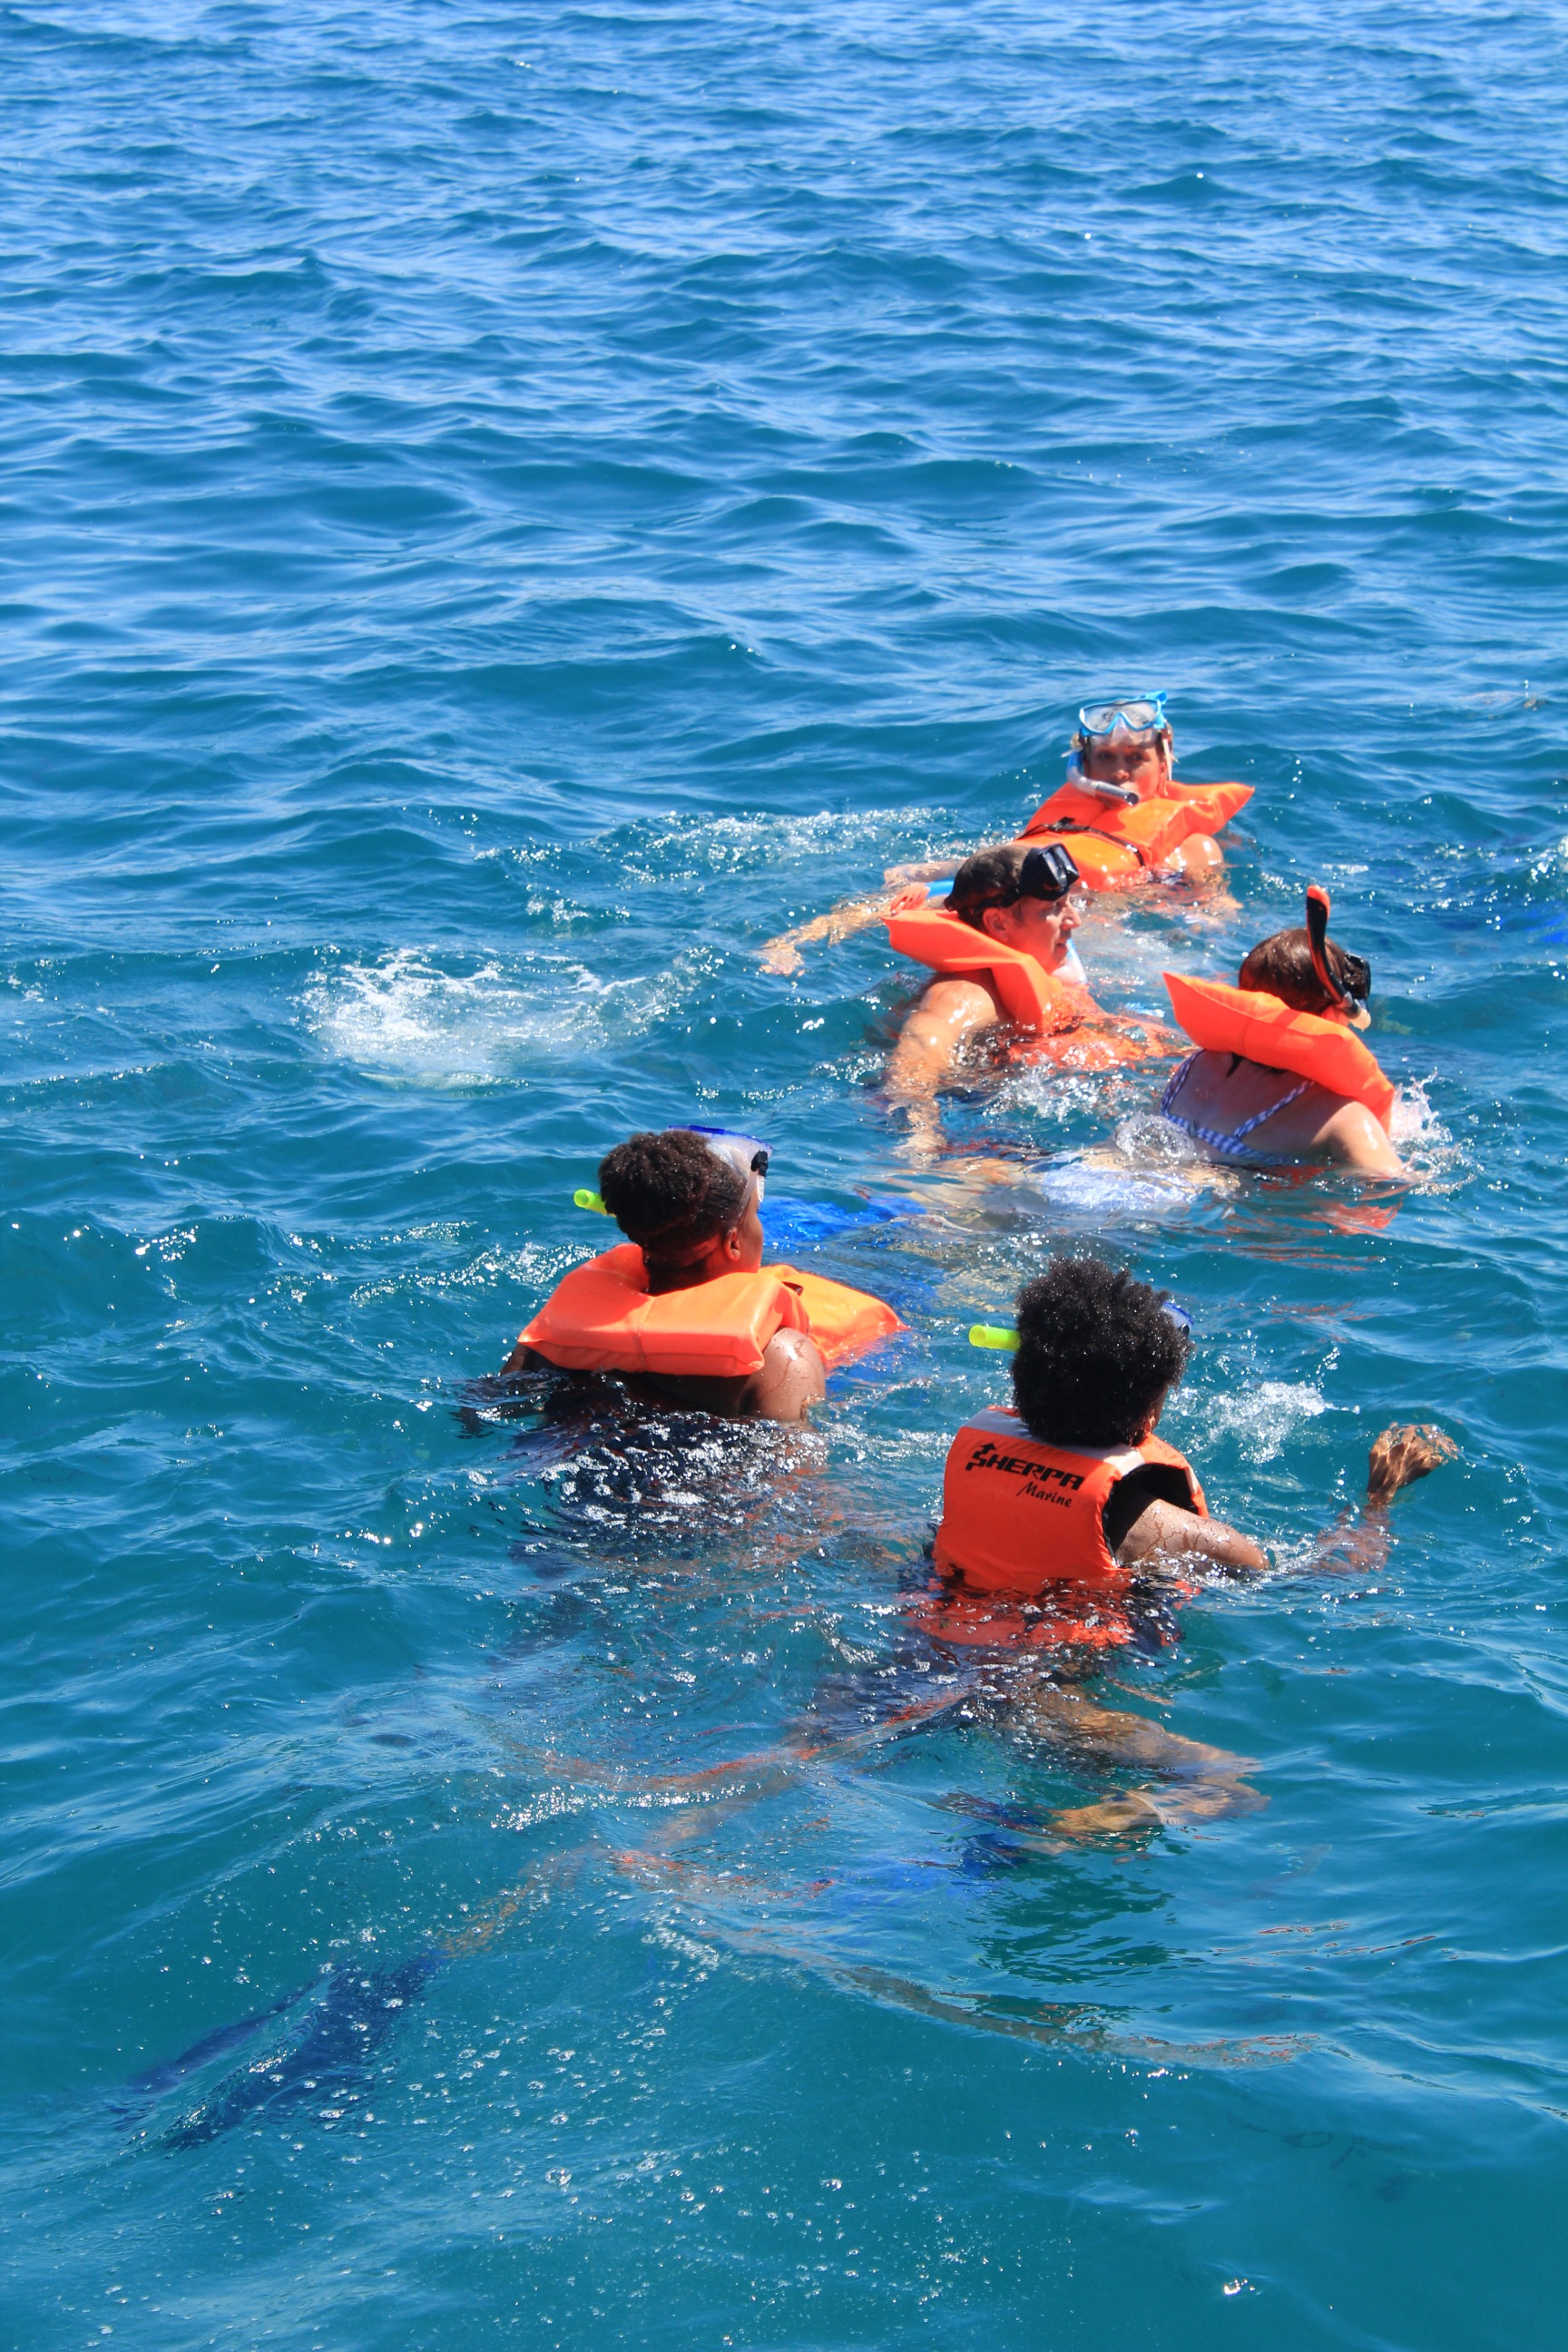 We jumped off of the side of the boat into the water!!! then off we went... I saw all different kinds of Fish and they swim right up to you. it was so crazy being in the middle of the Ocean. Swimming back to the boat was rough, but it was a cool experience!!